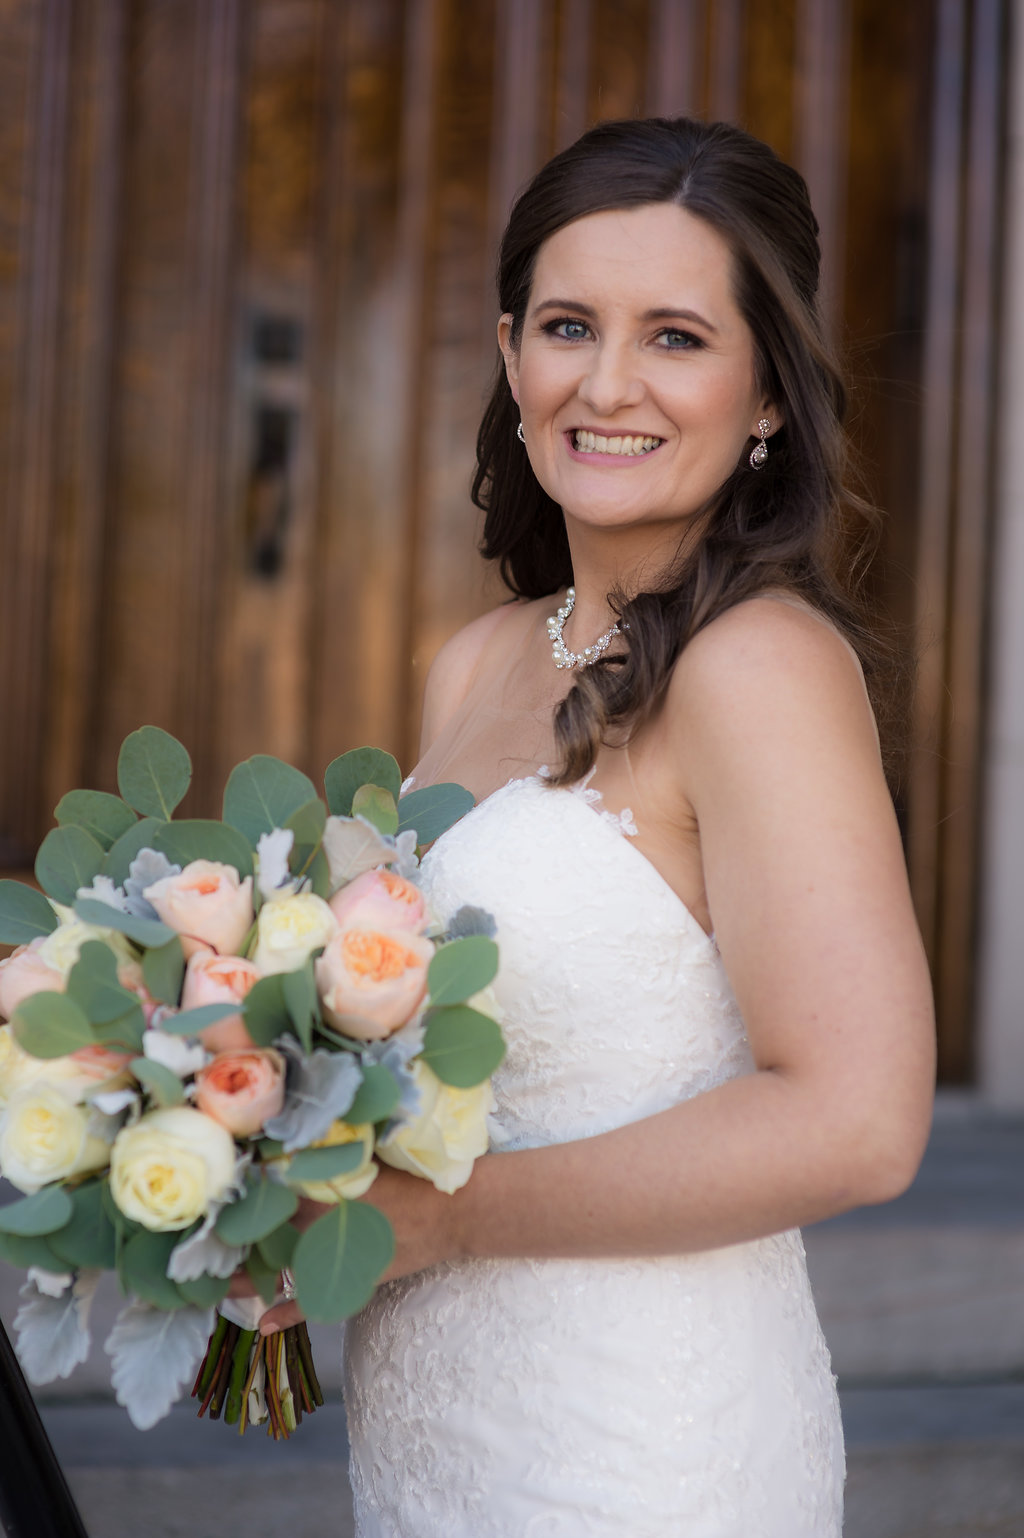 A beautiful bridal bouquet by Katrina!  Photo by Kelli Hodges Photography